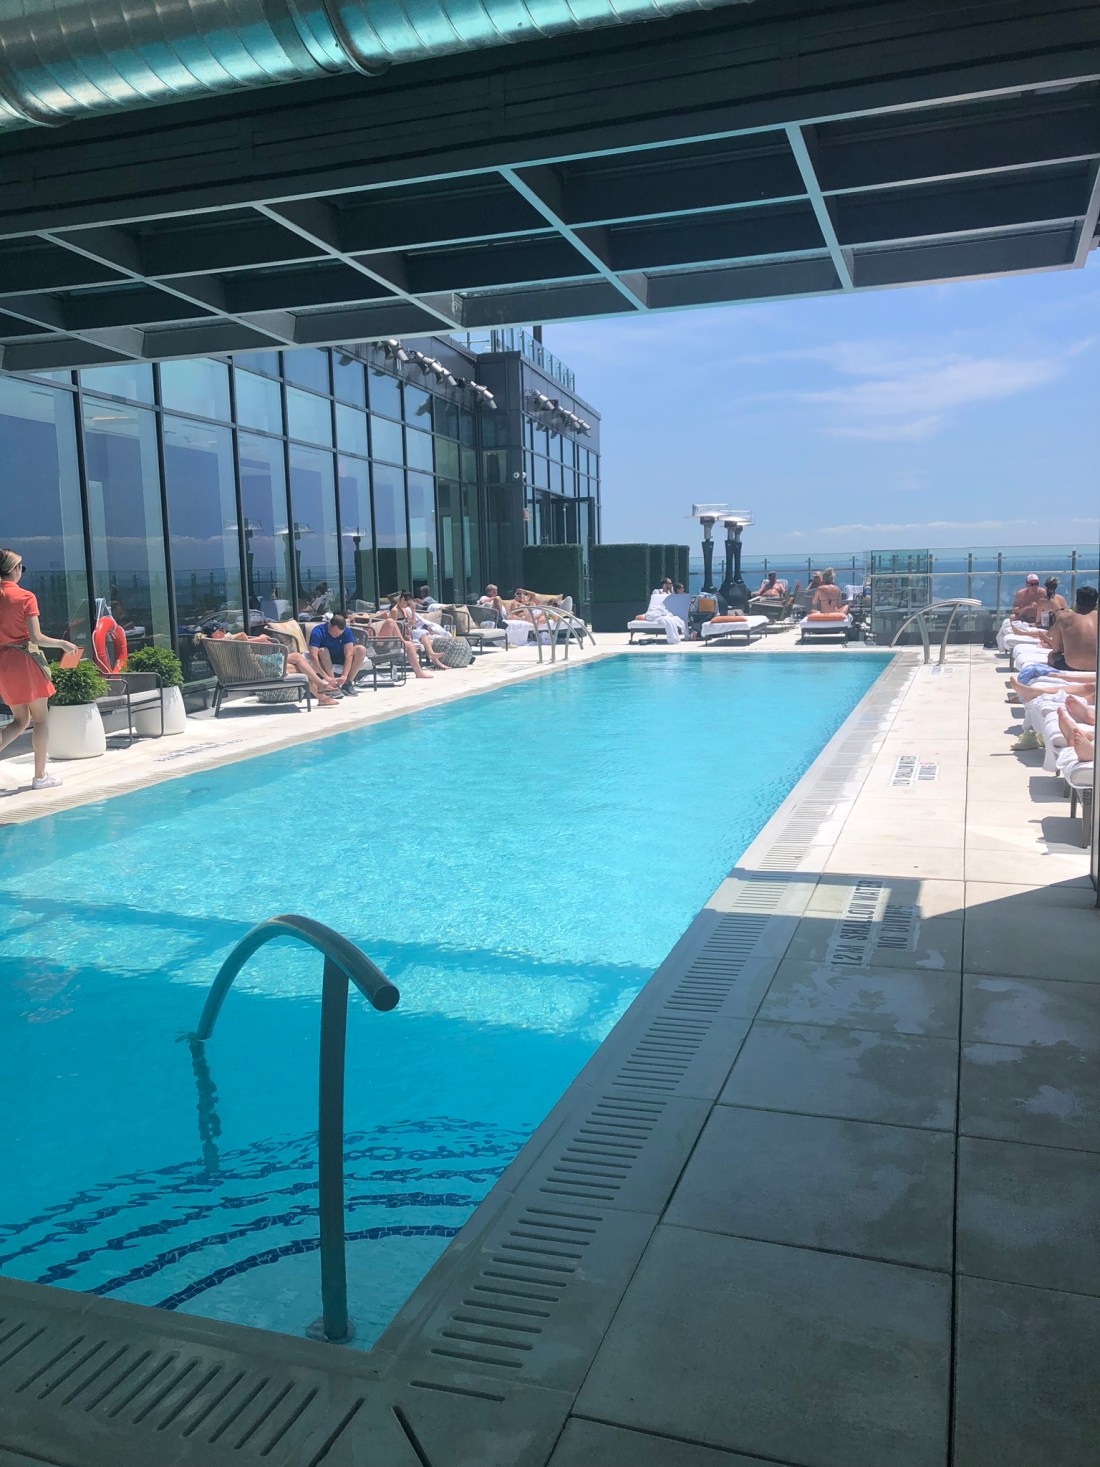 Summer in Toronto: Hotel X rooftop pool